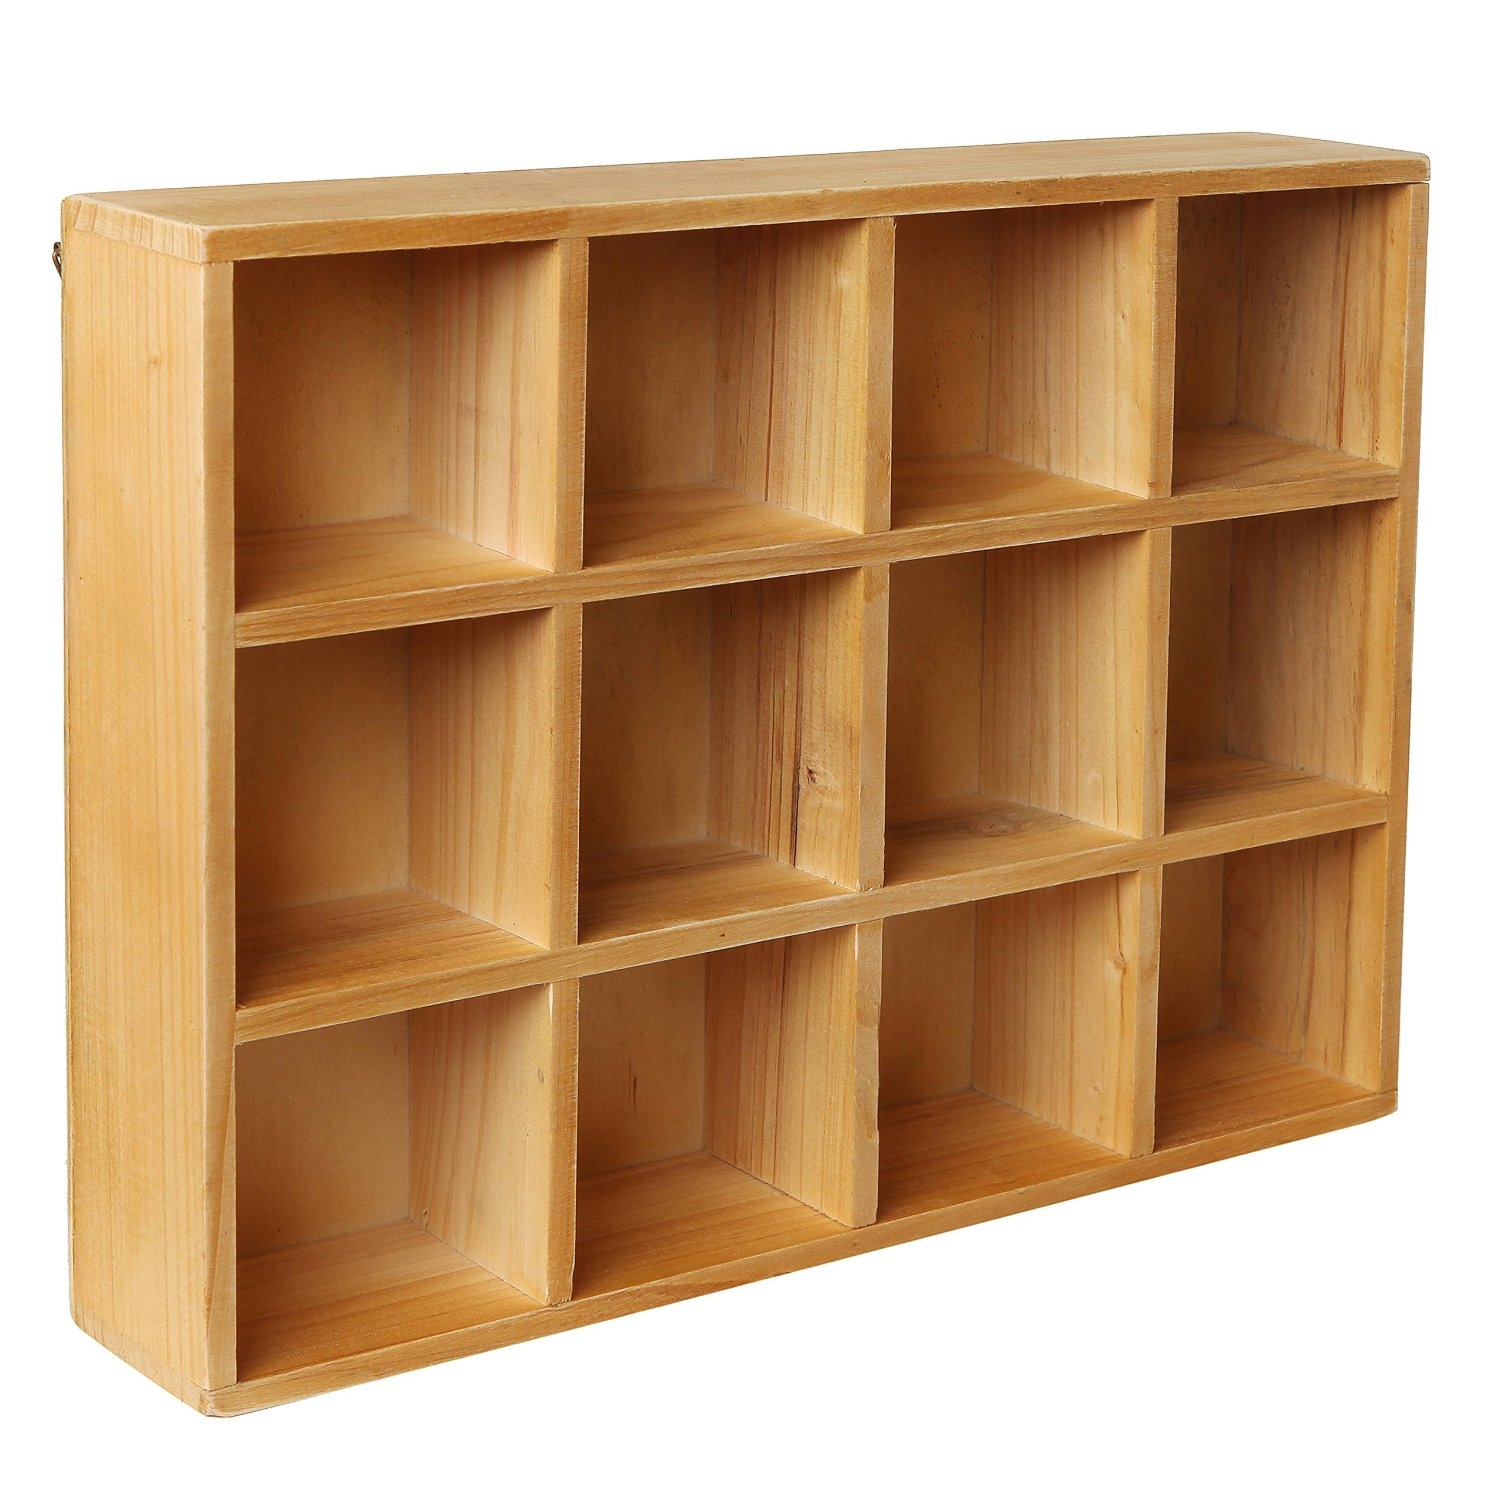 wall storage units 15 inspirations of free standing shelving units wood 29596